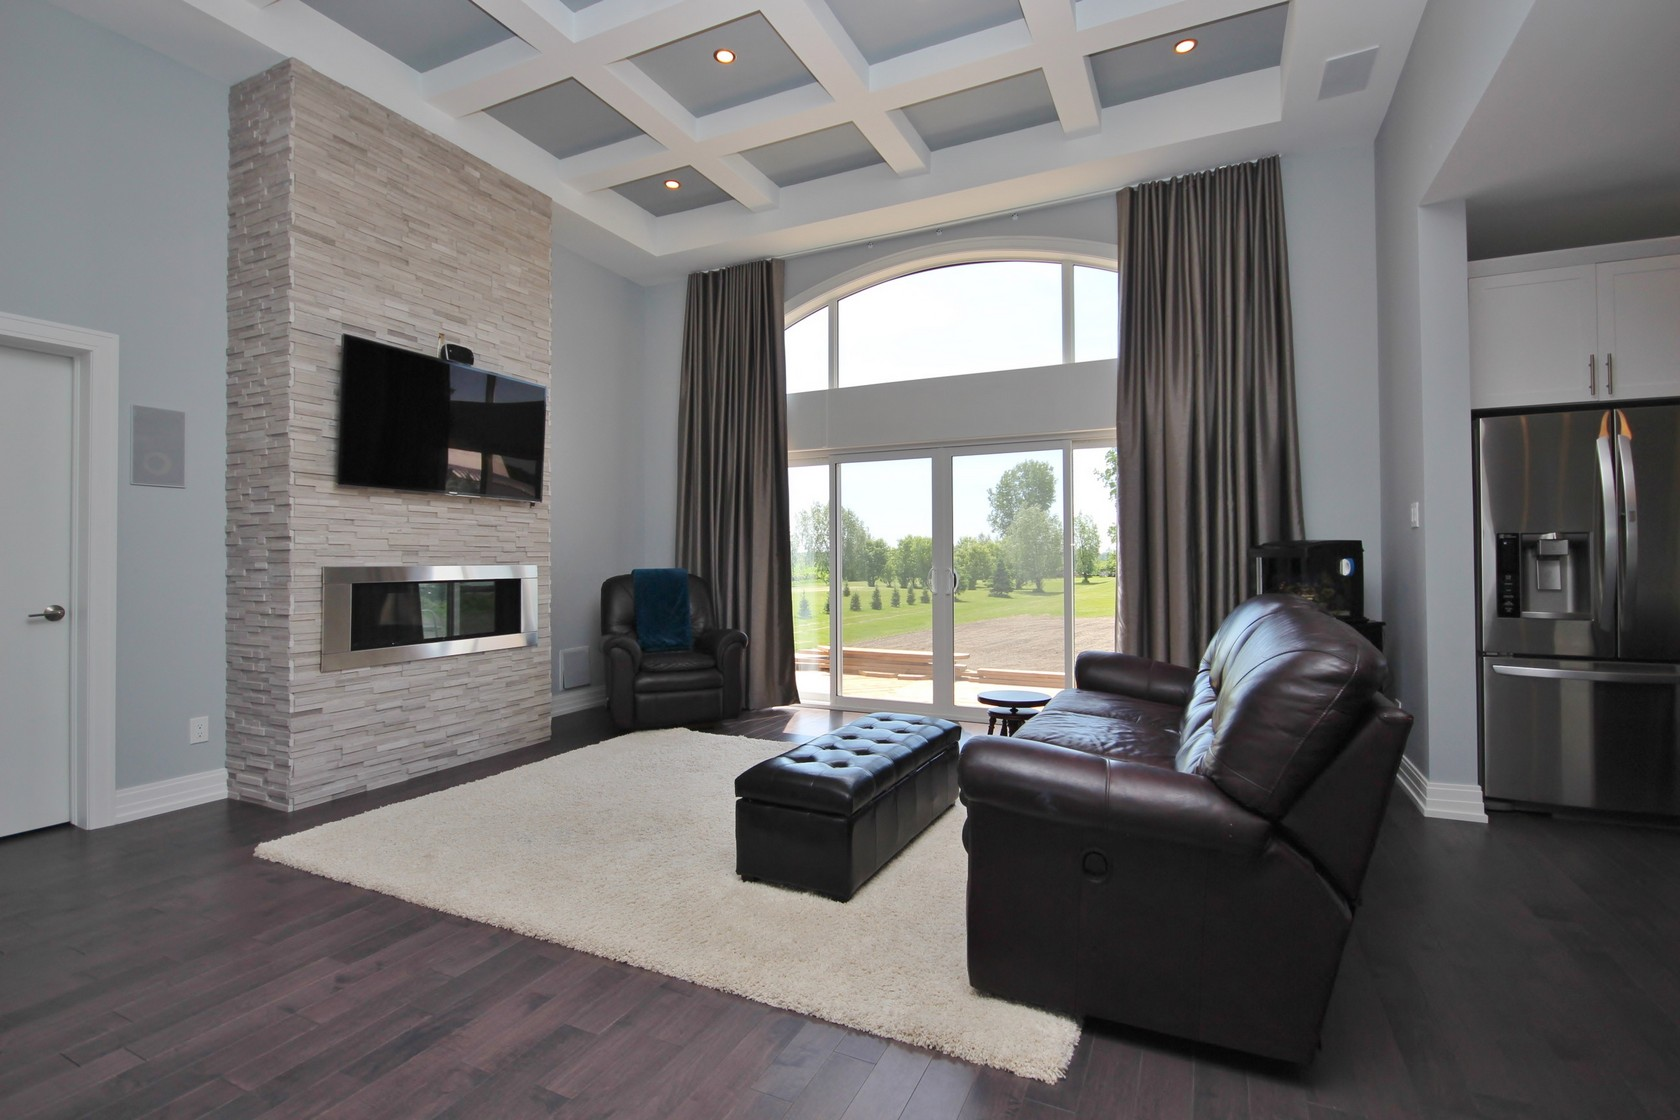 House Builders Ottawa Stittsville Omega Homes